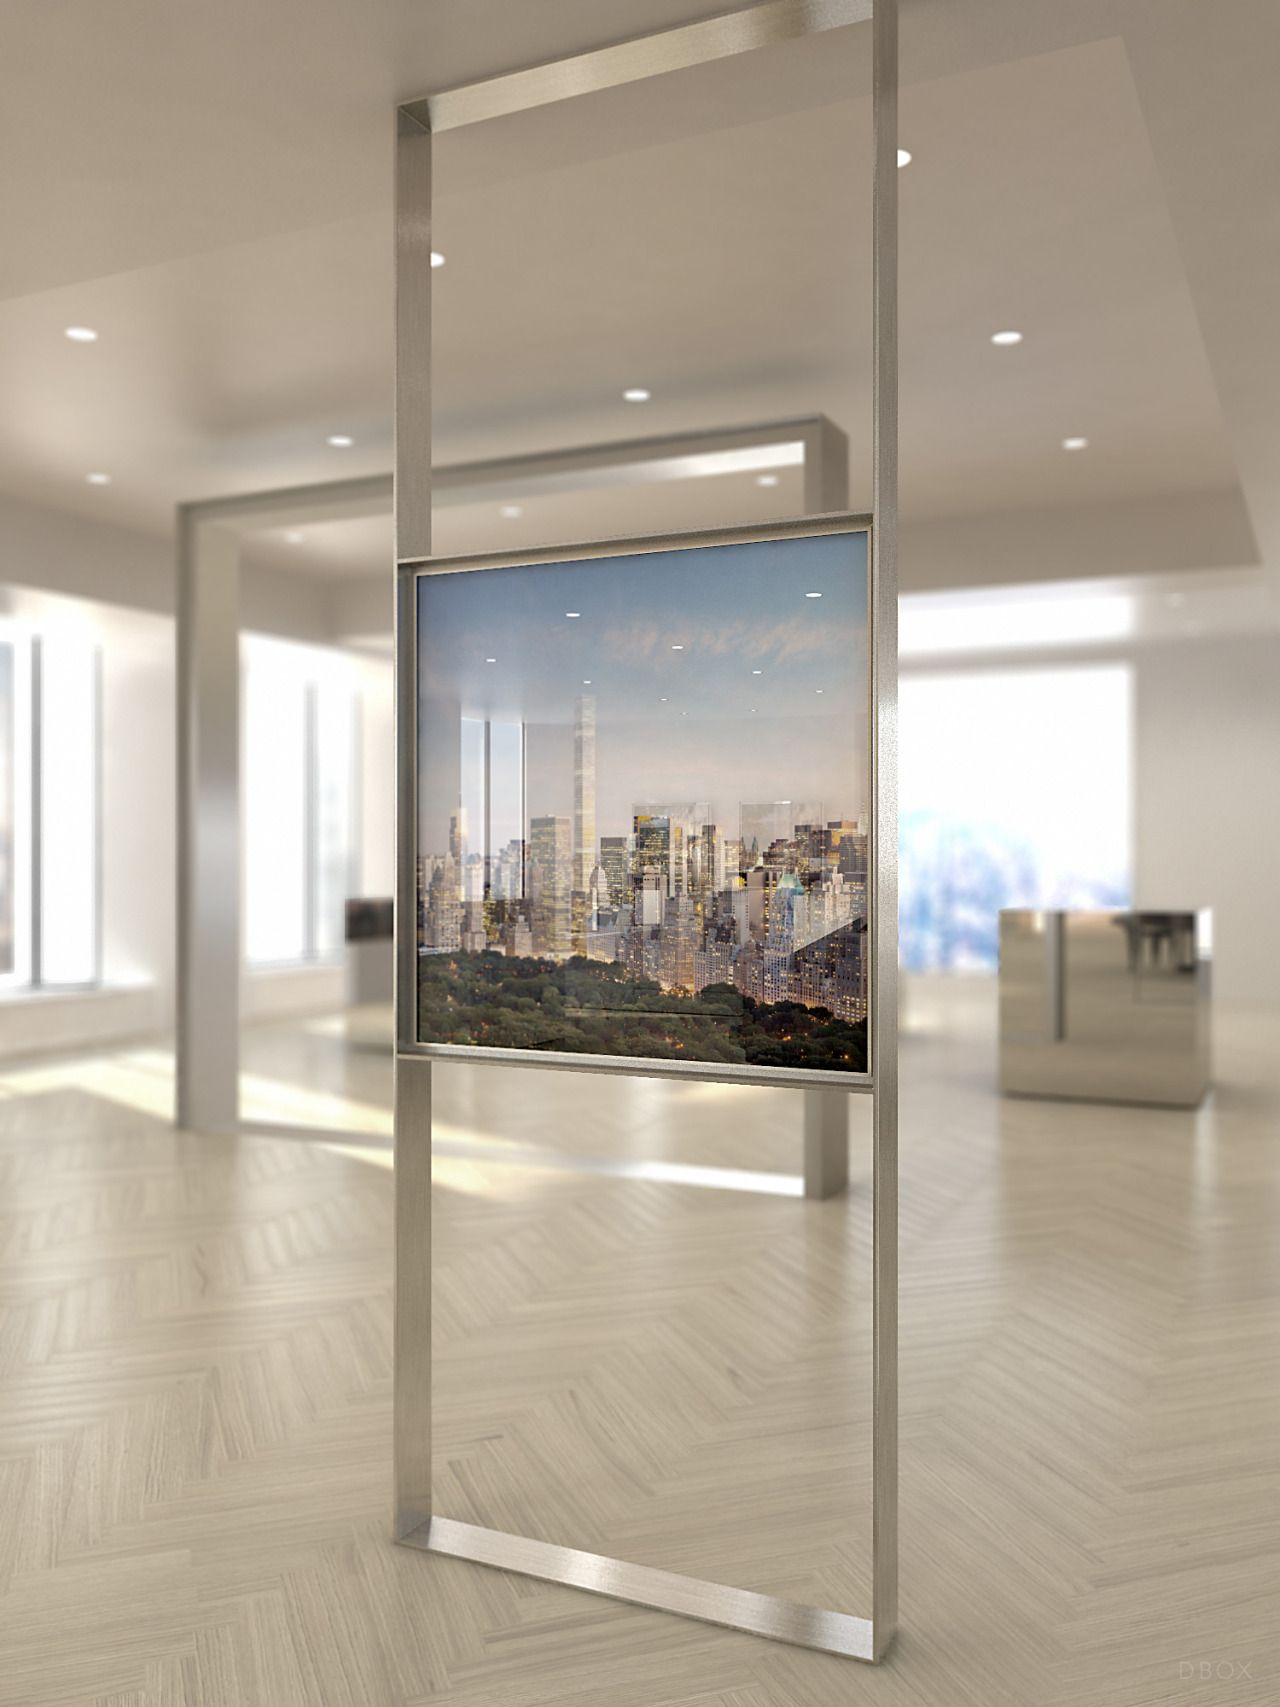 432 Park Avenue Sales Gallery Design Processdbox 2012